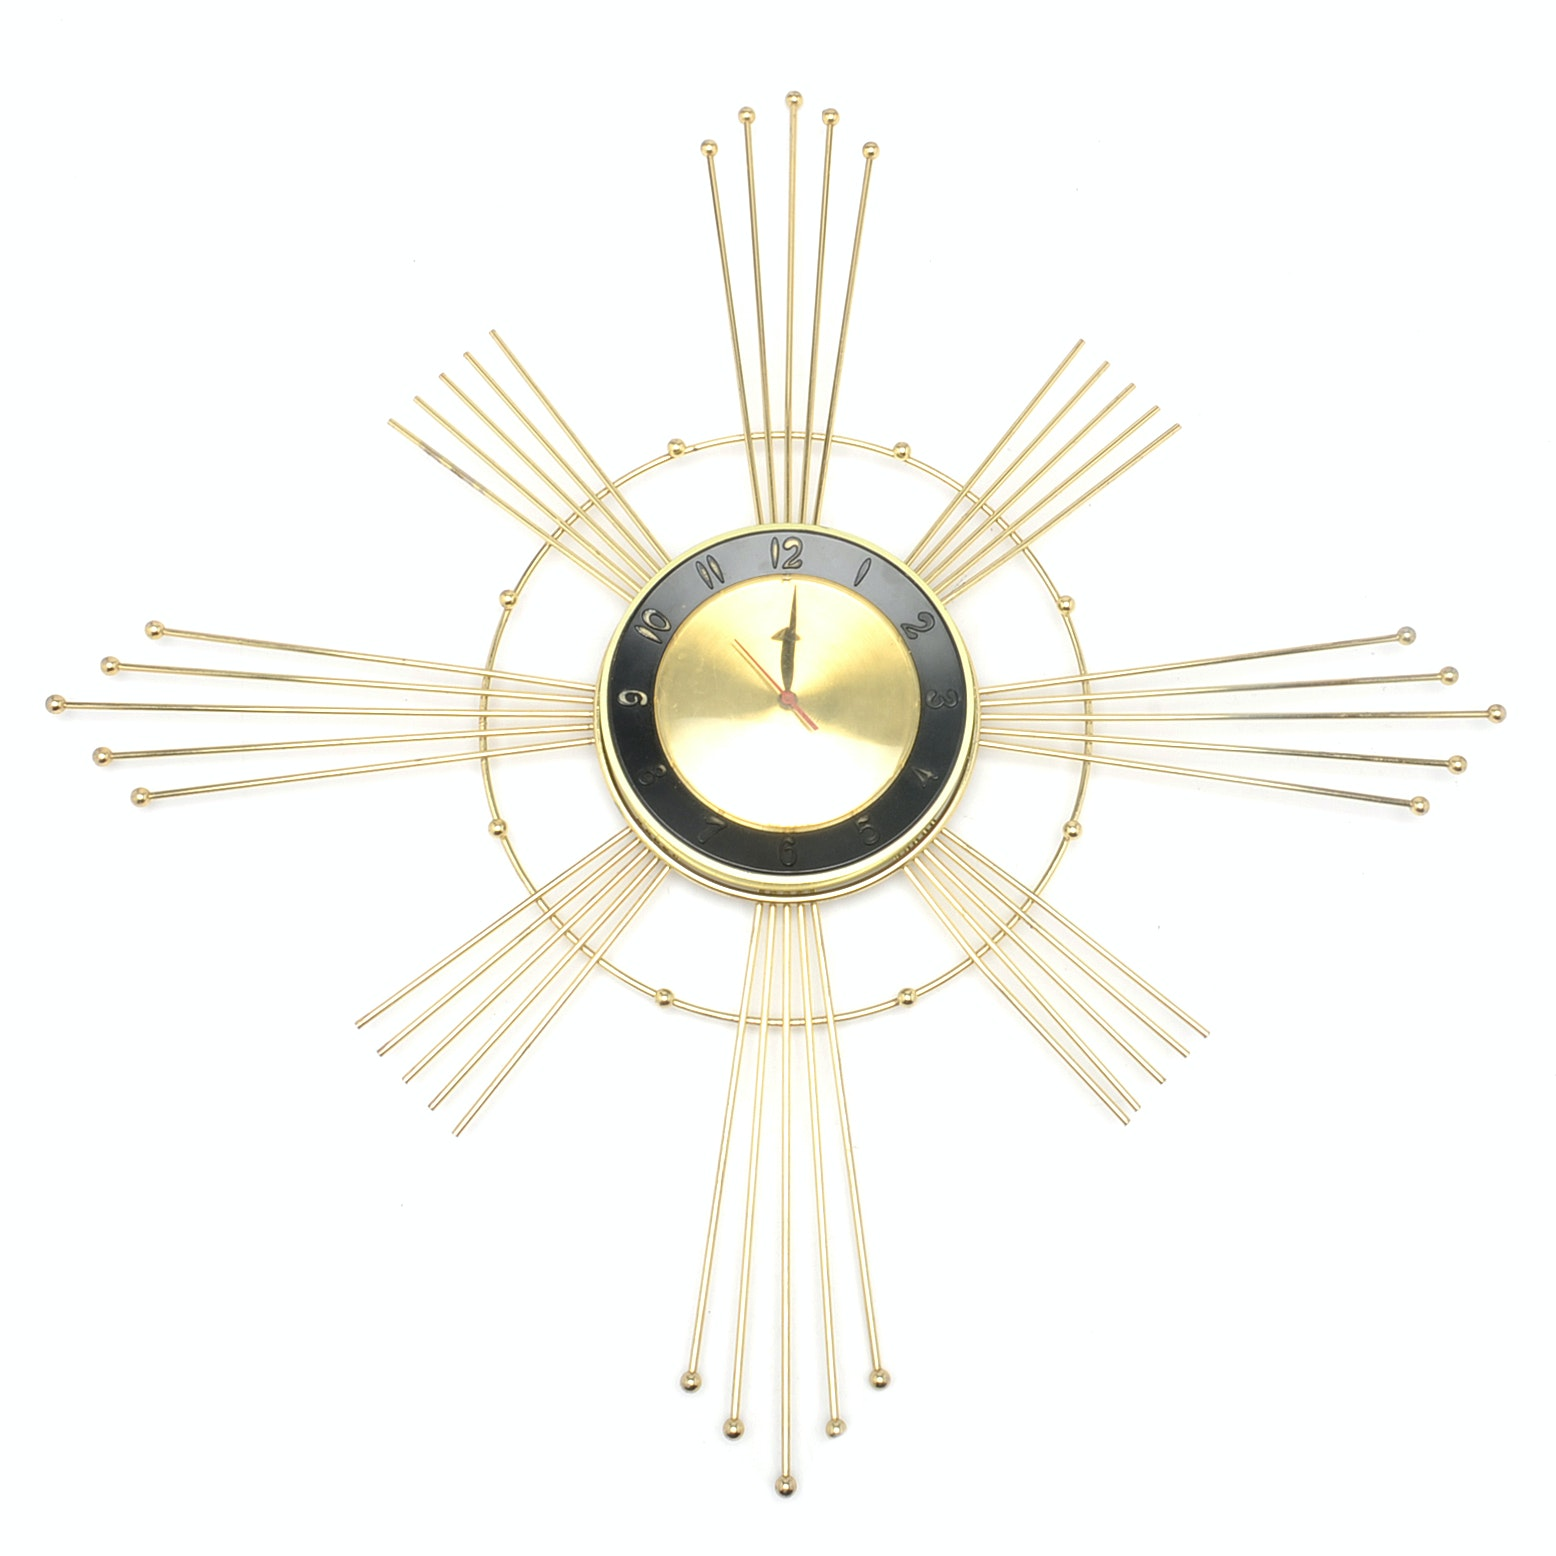 Vintage Sunburst Wall Clock by Lux Time